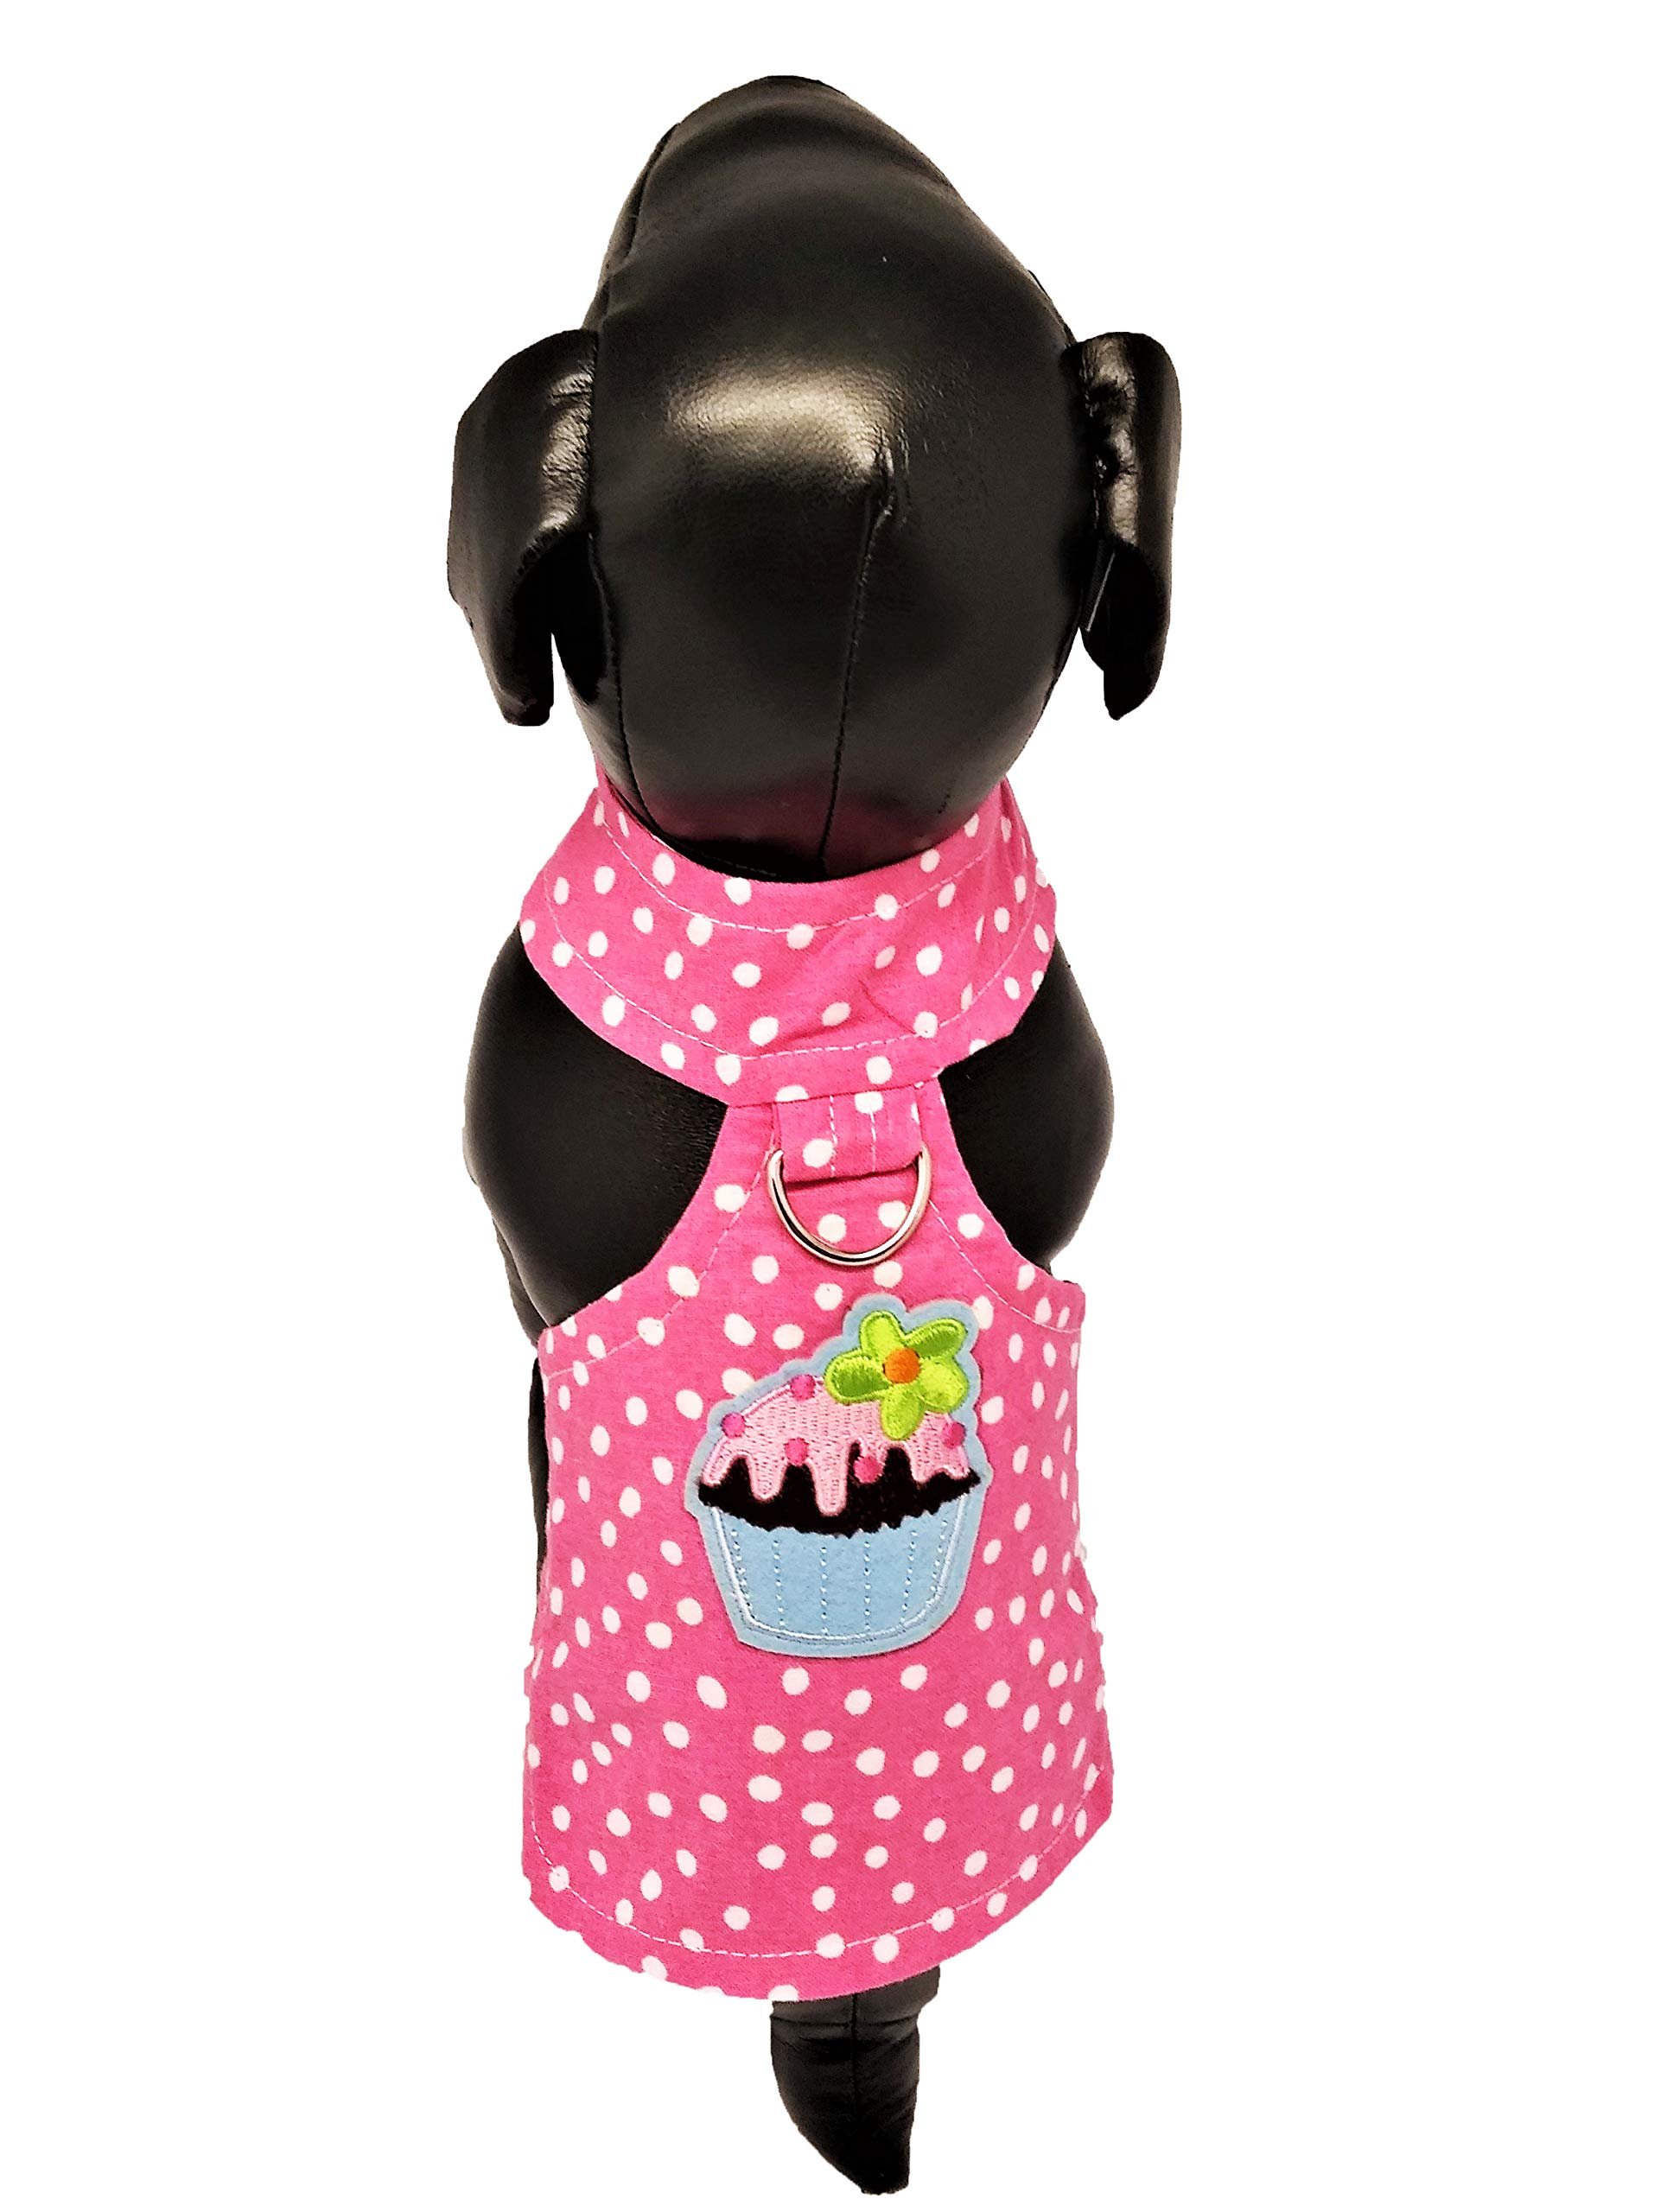 Kuky Chic, Beautiful Dress Decorated with Small Circles White, in Pink Color, Cotton Fabric,with a Strong Harness for Your Safety Design has Designed with Beautiful Cupcakes Application Size L.